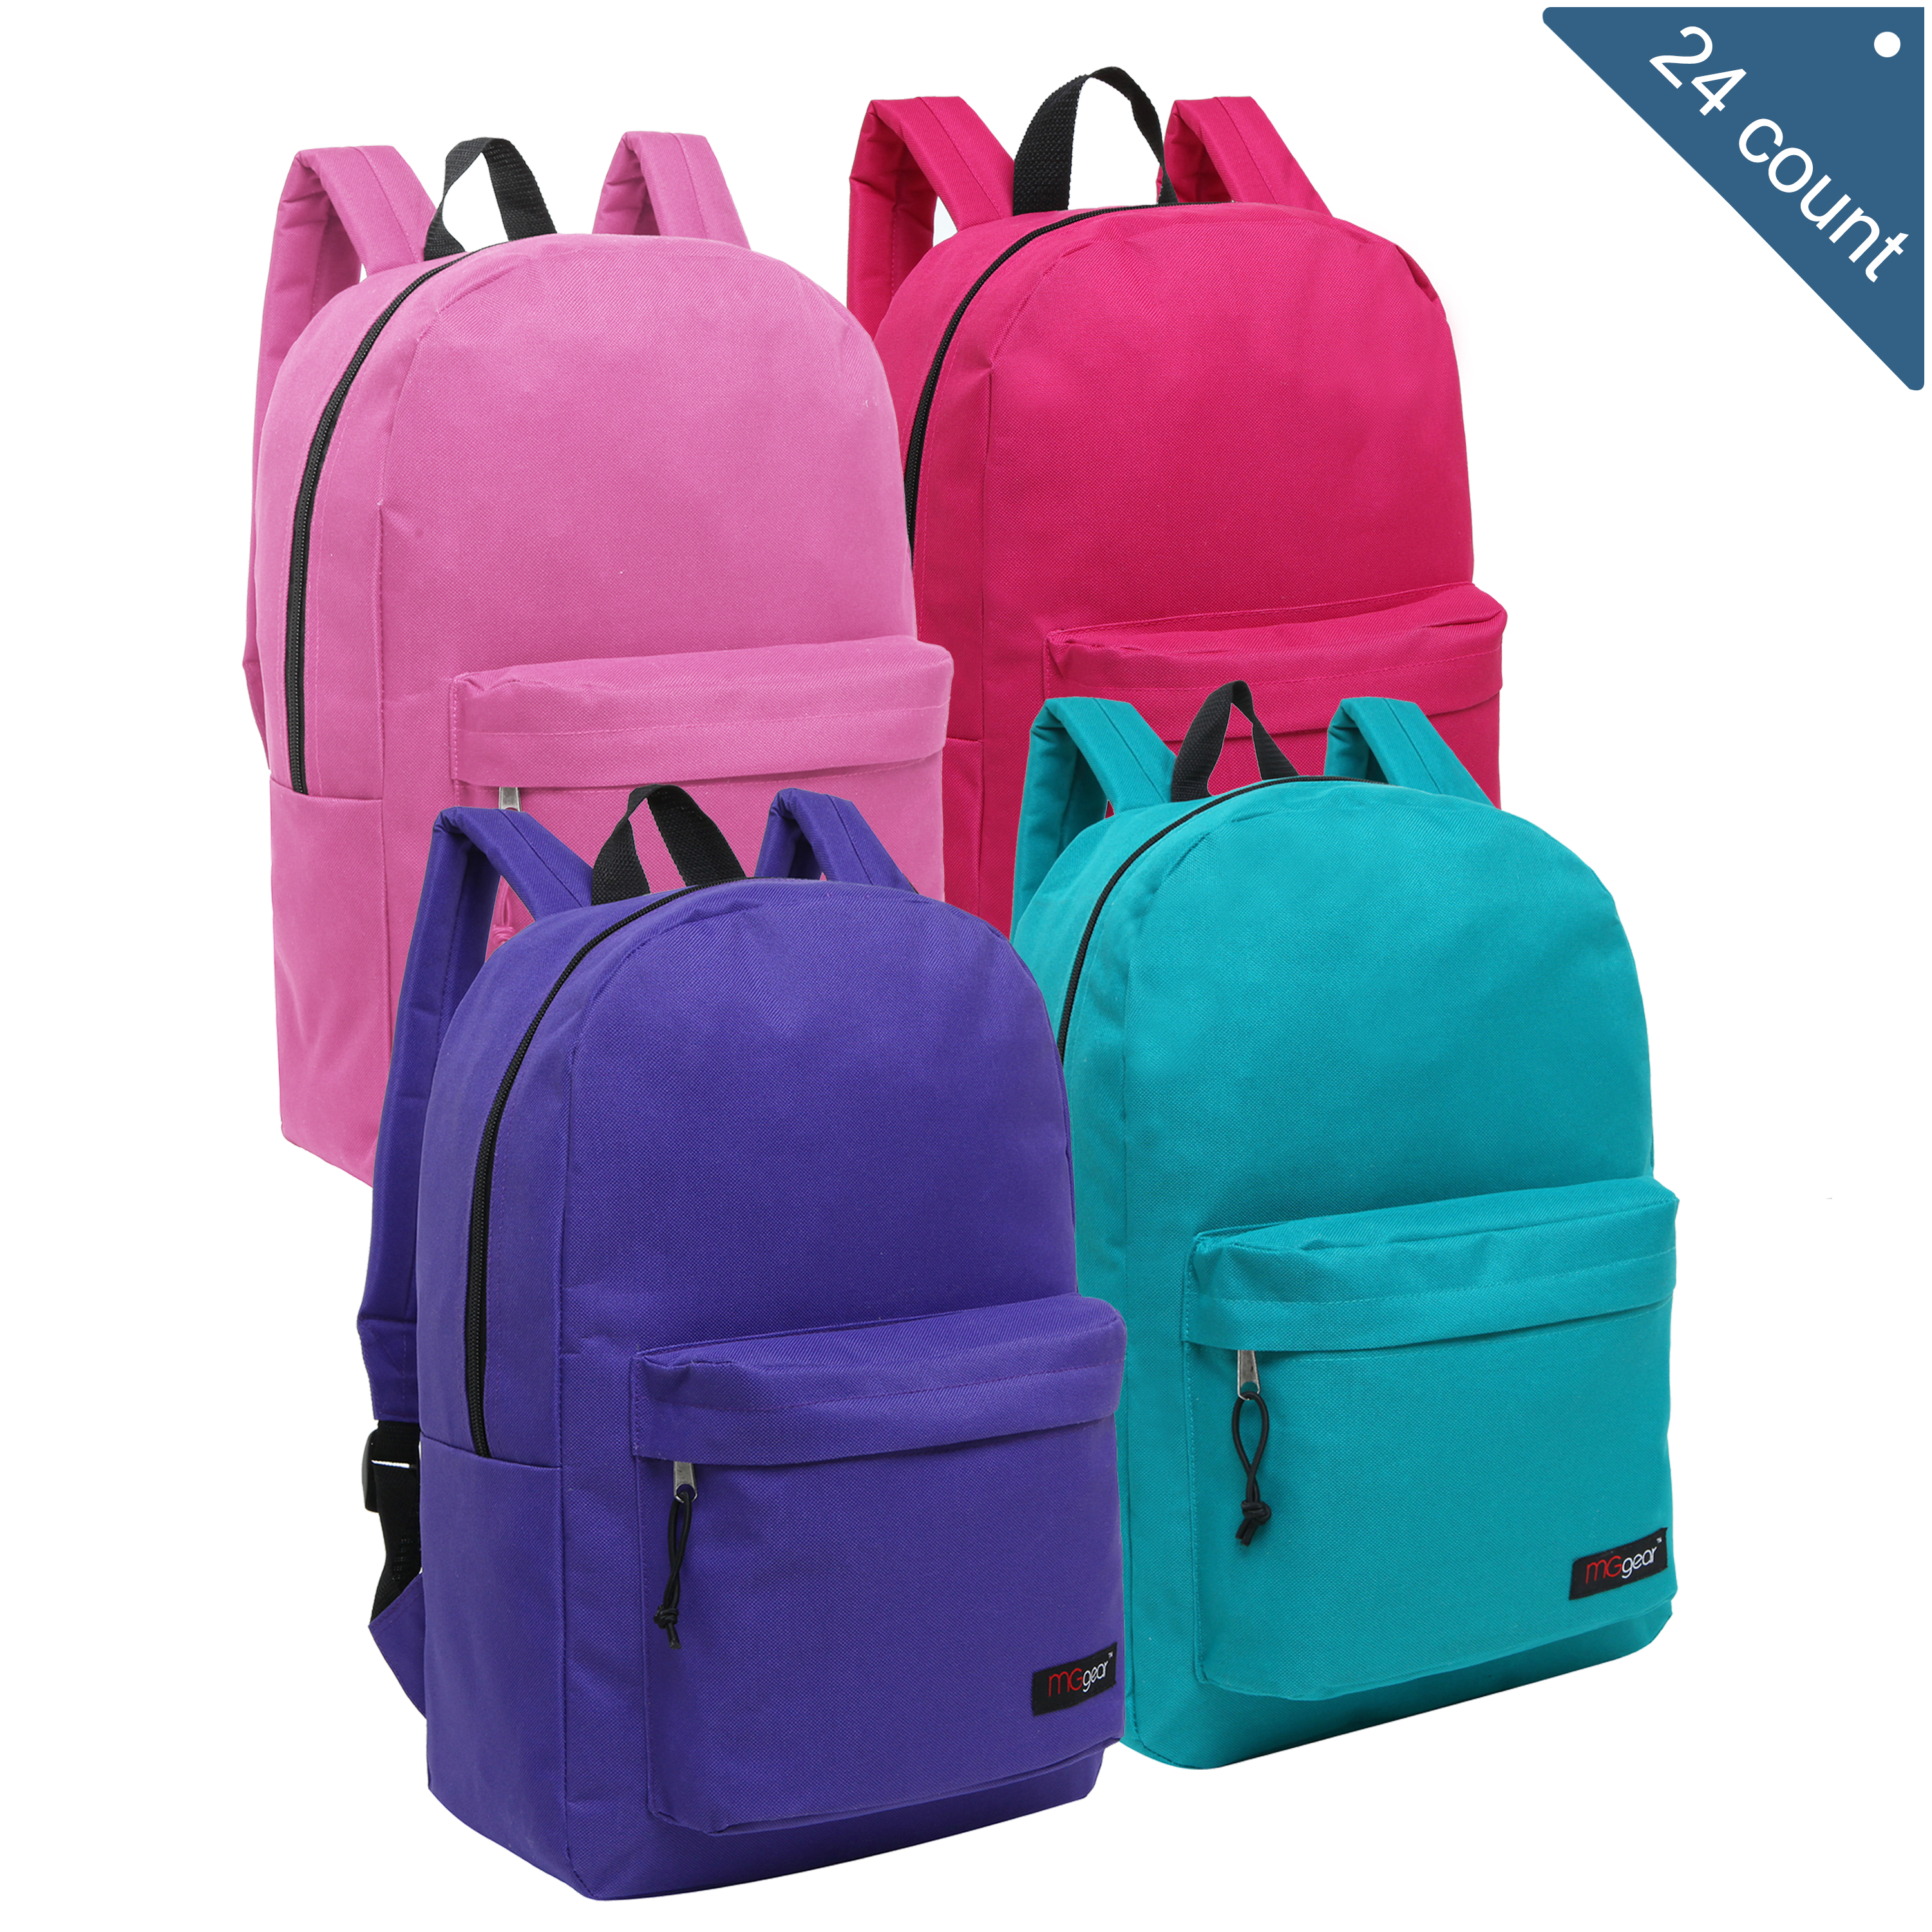 MGgear 16.5 inch Basic Elementary School Kids Wholesale Backpacks, Pastel Color Mix